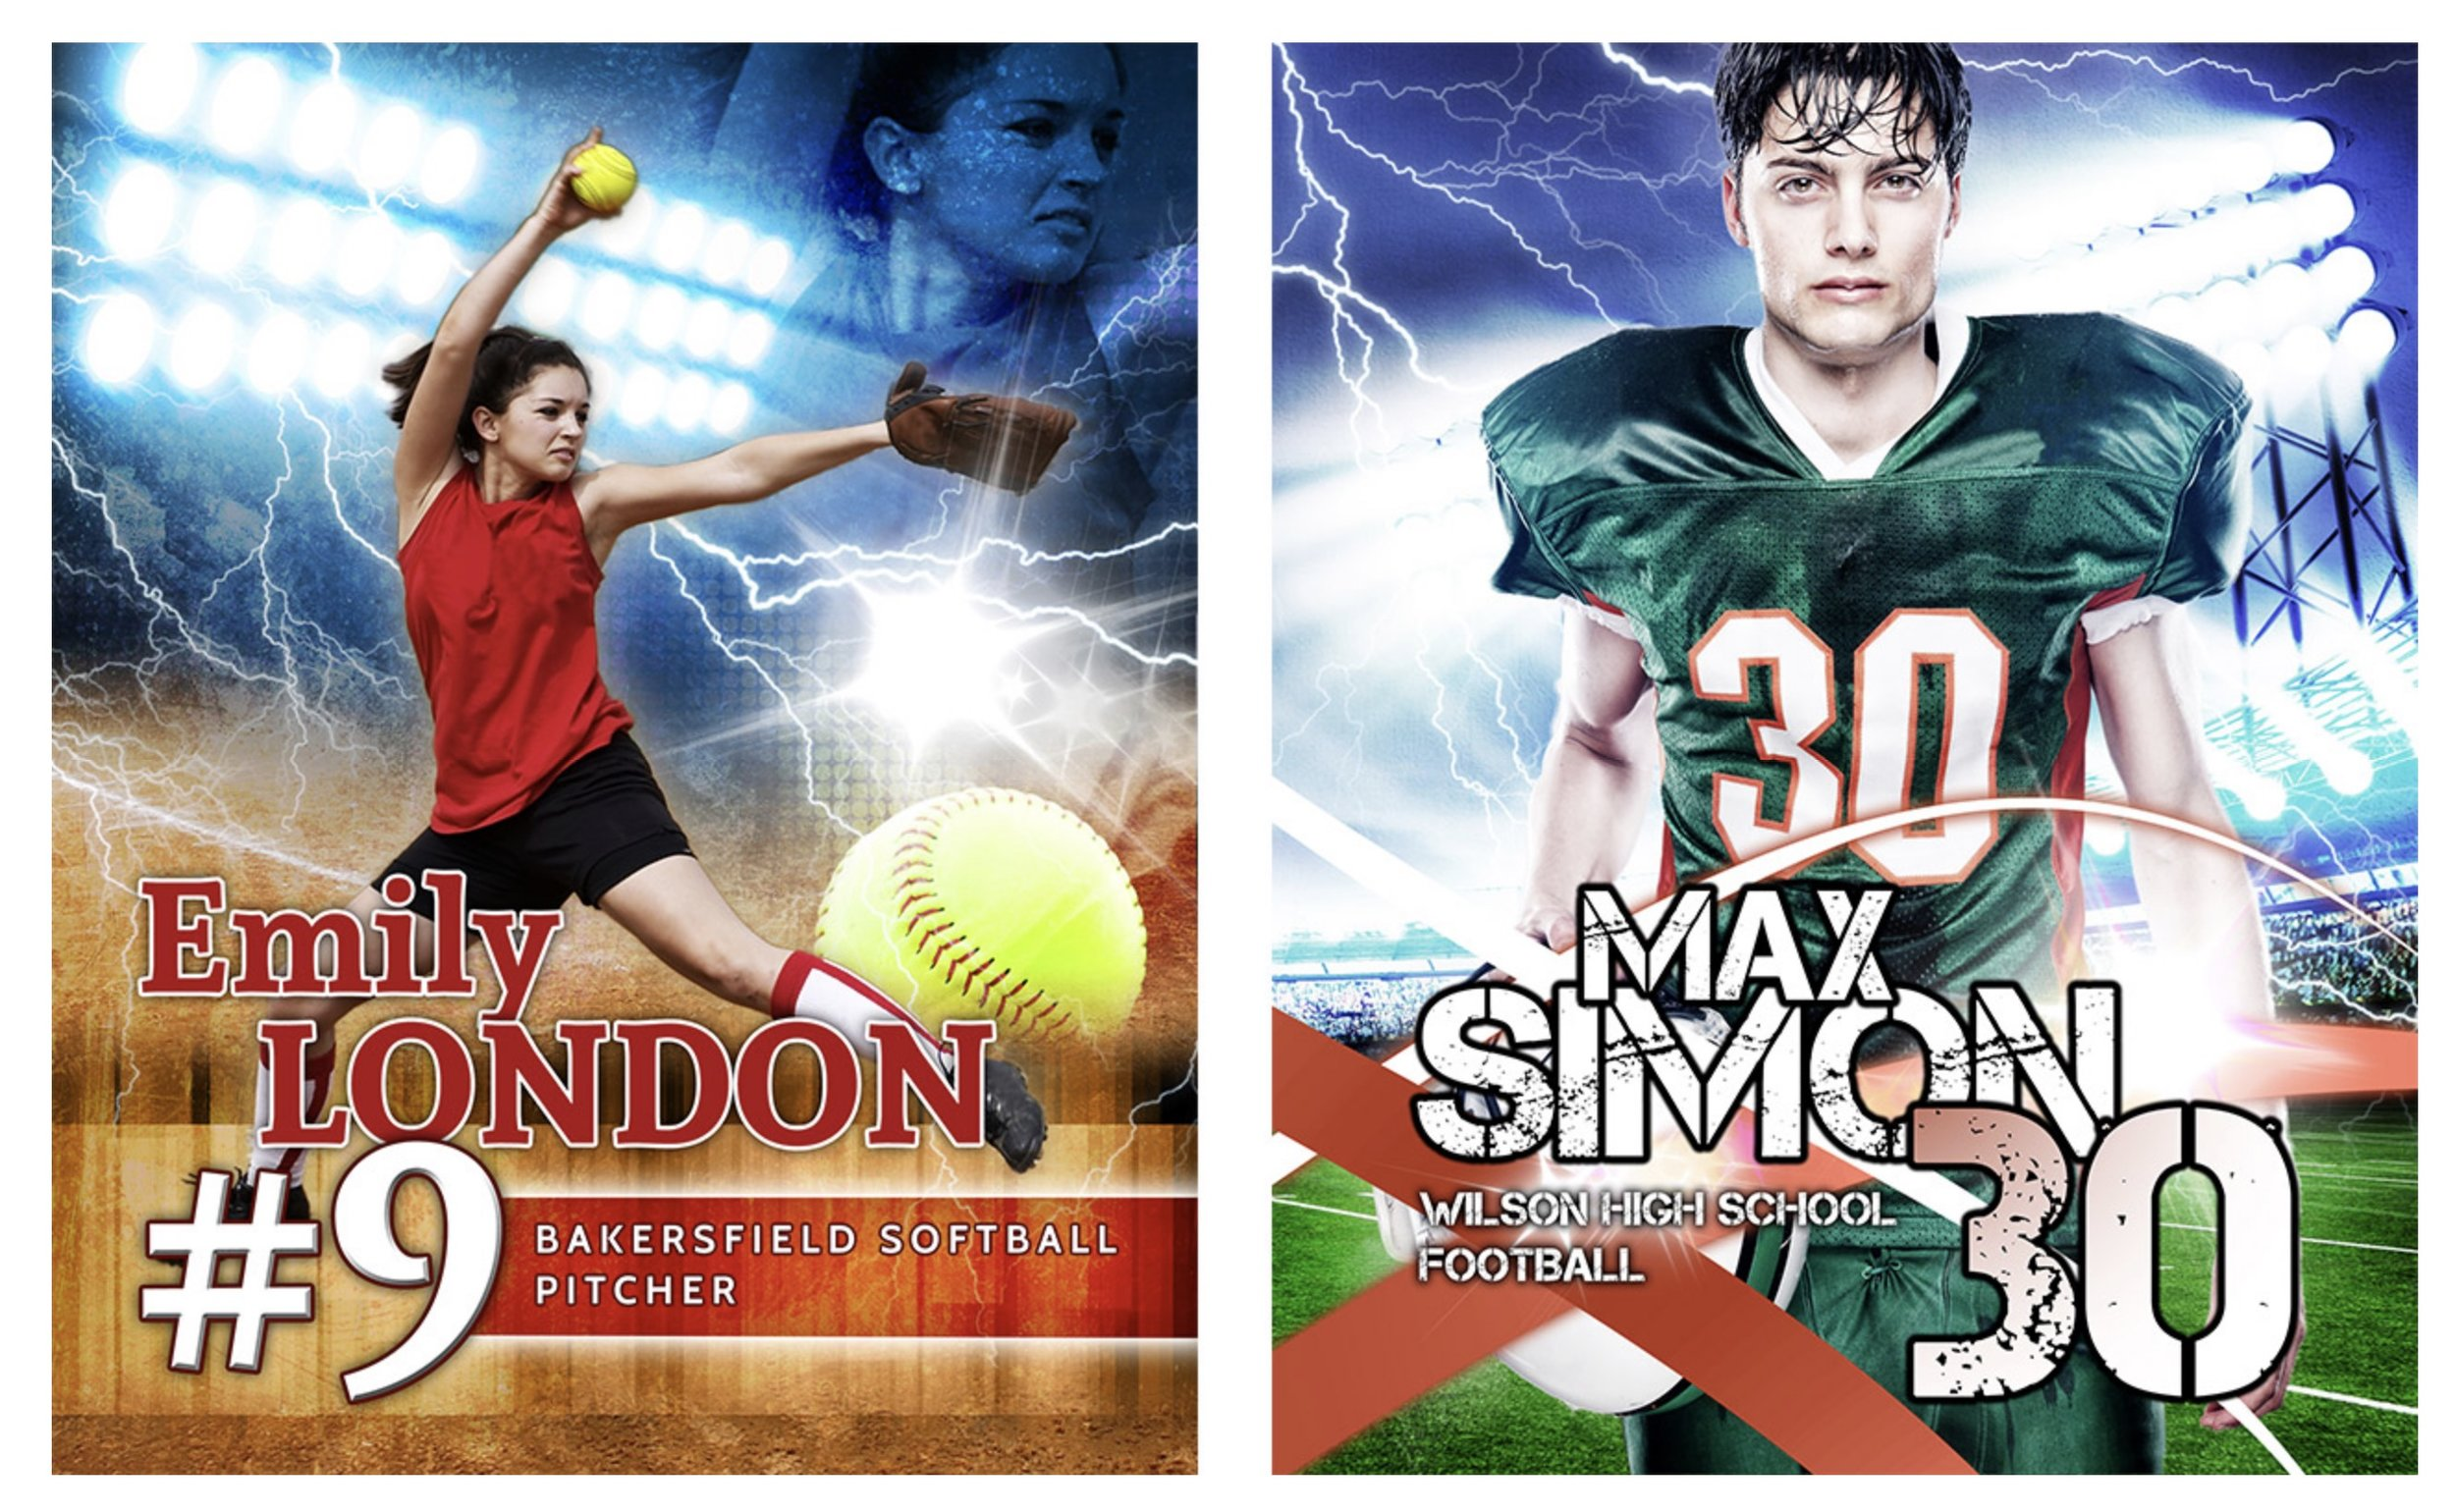 PLAYER POSTER -